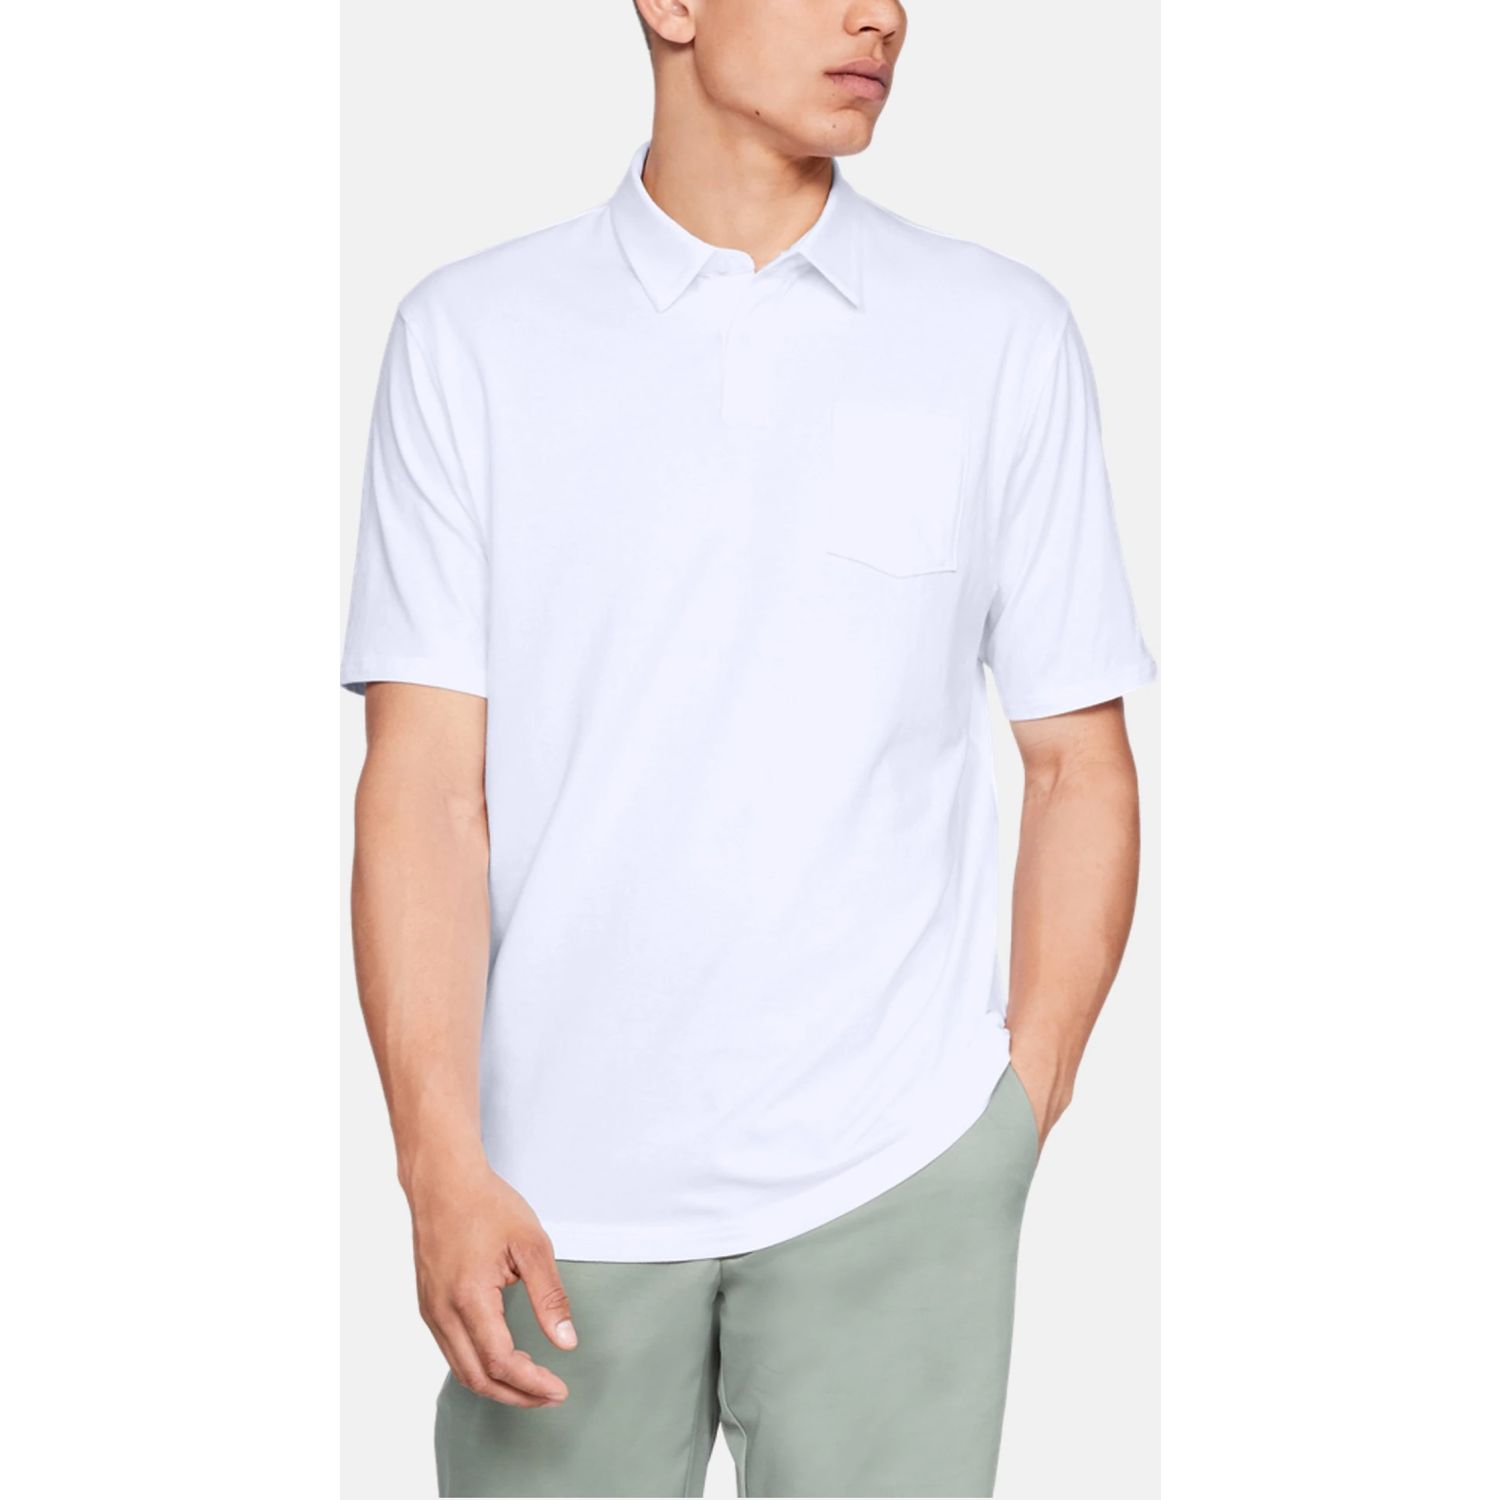 Under Armour CC Scramble Polo Blanco Camisas de polo